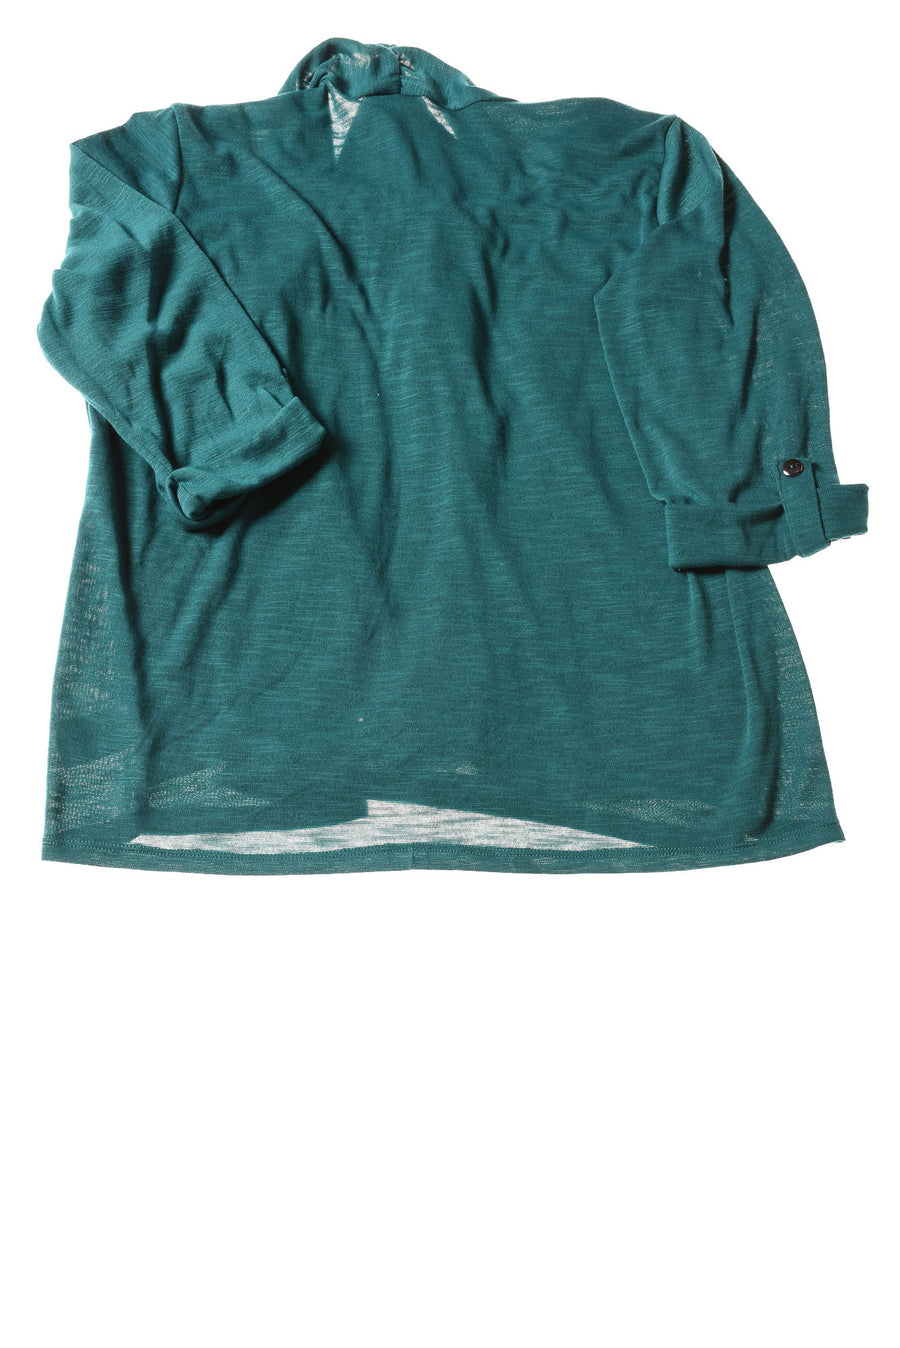 NEW JM Collection Women's Top X-Large Green